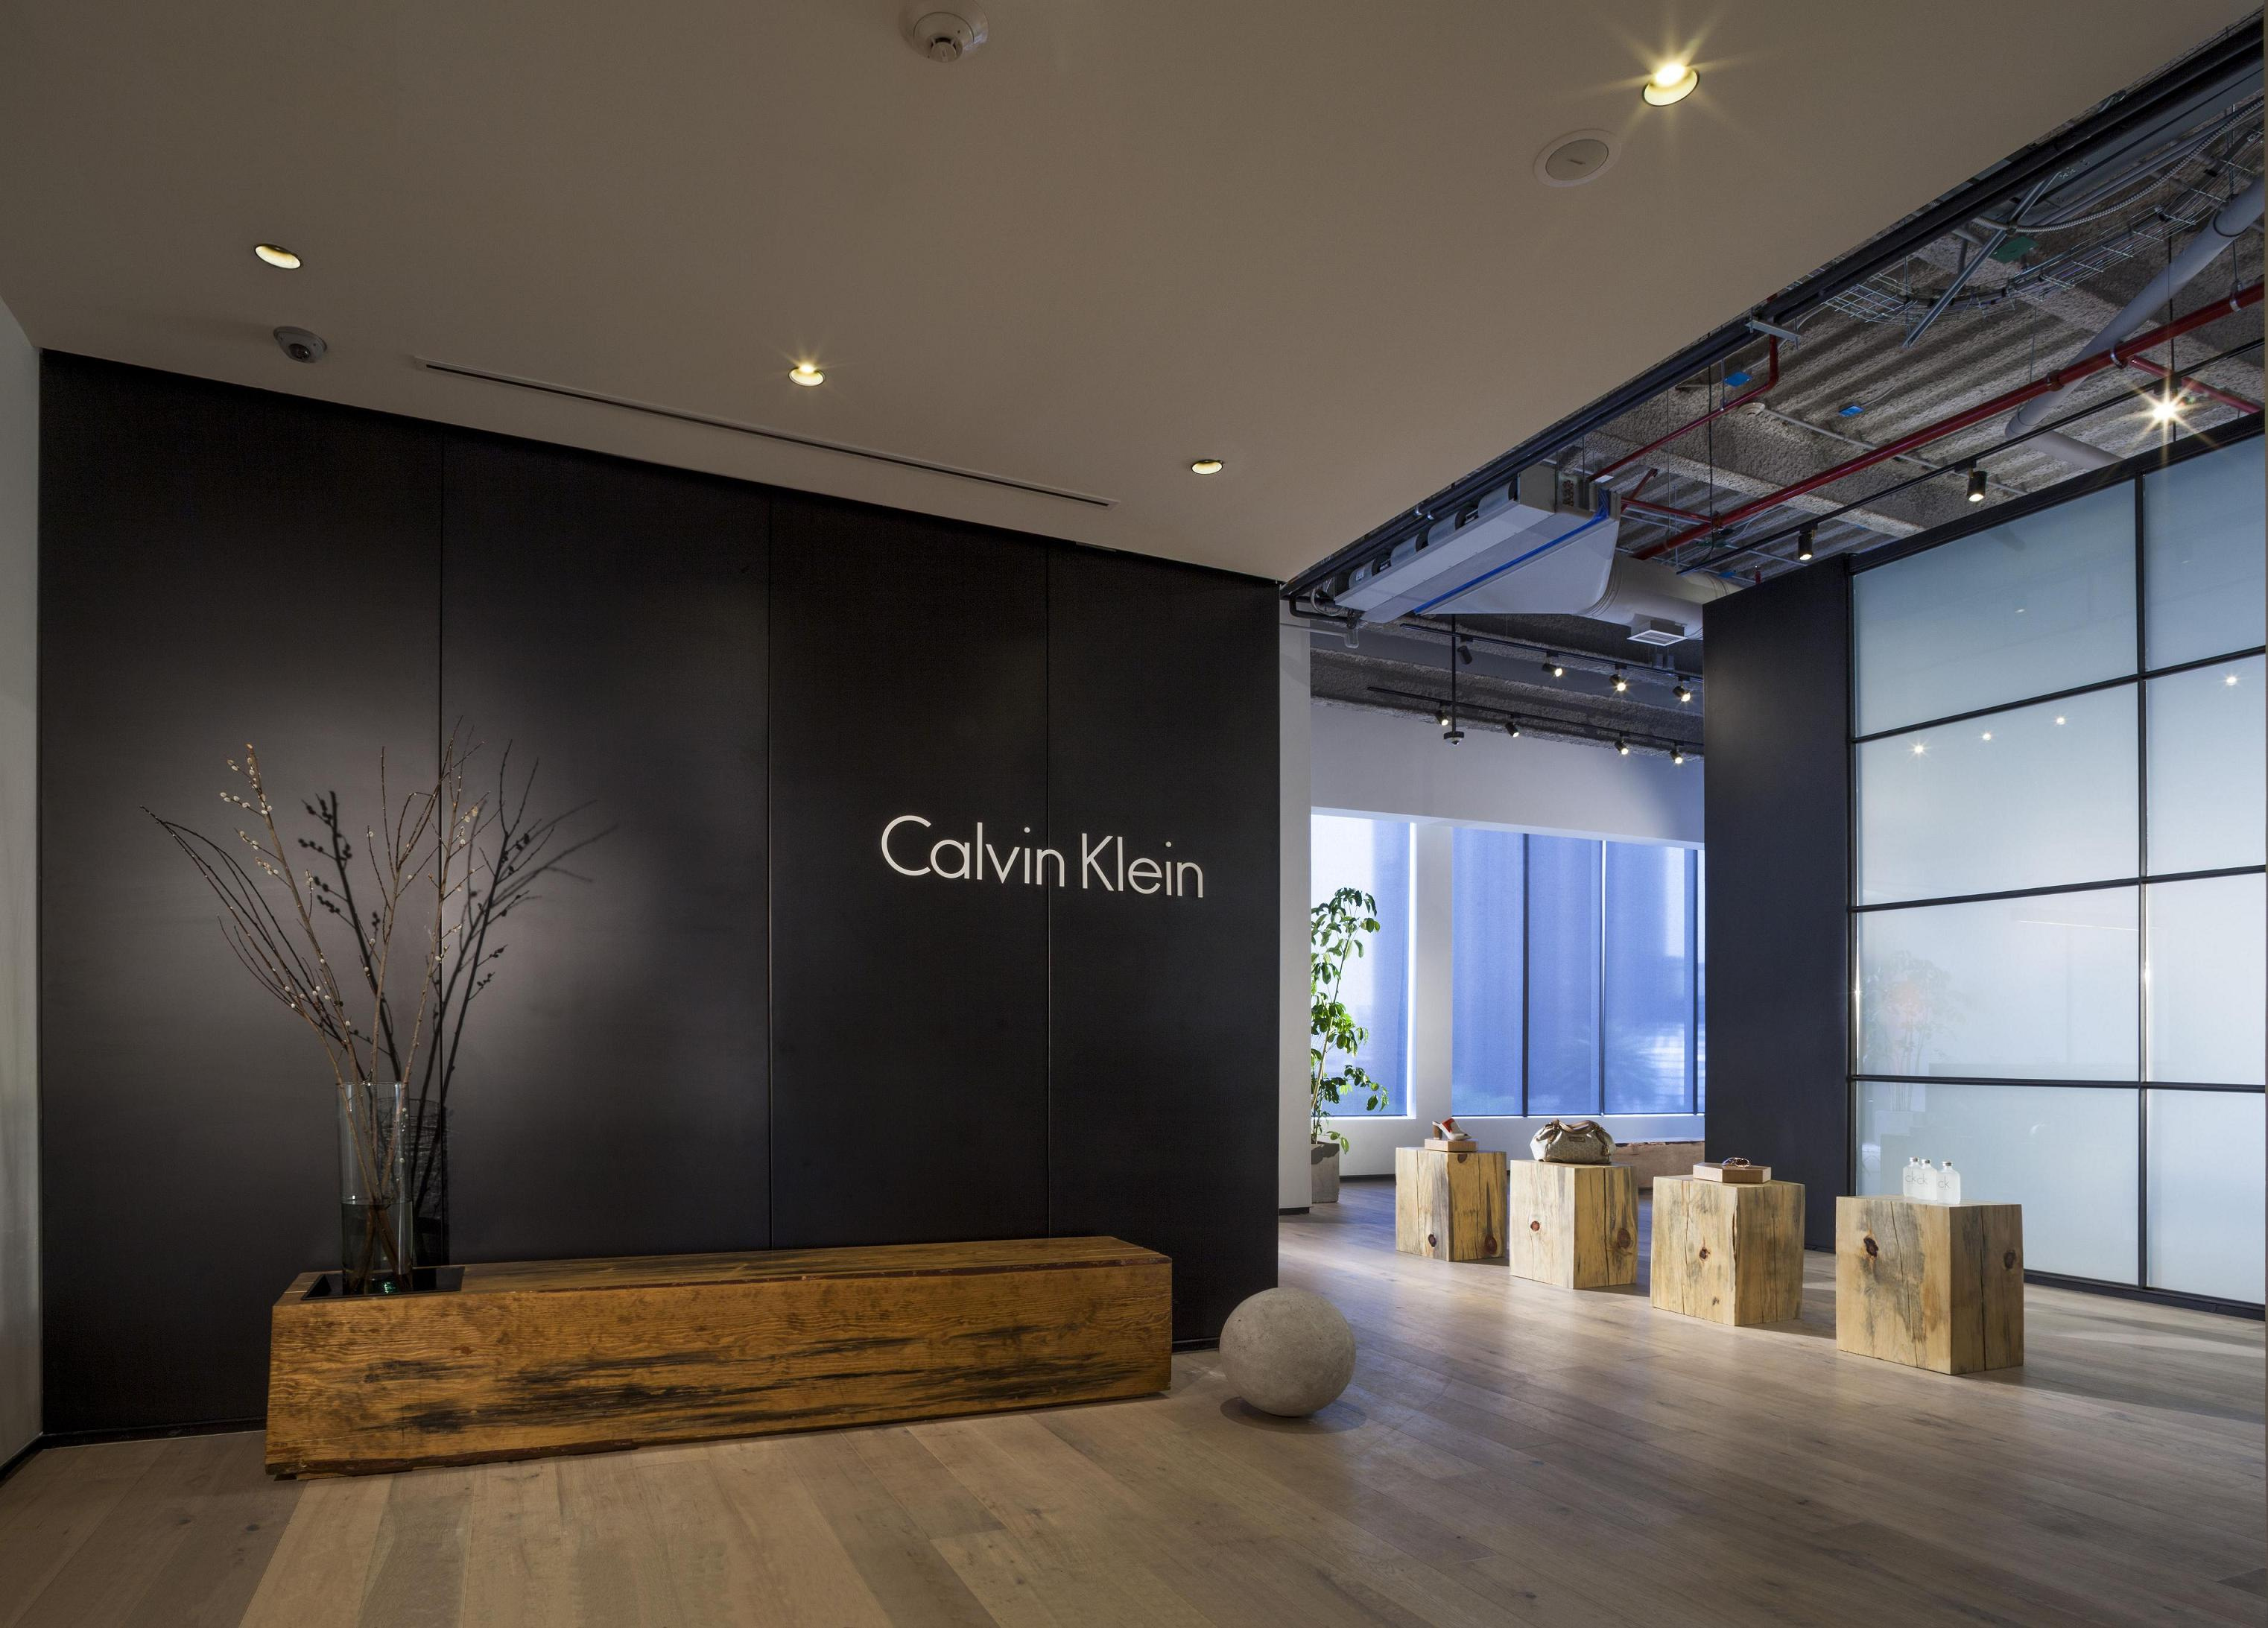 Calvin Klein Showroom By Juan Carlos Baumgartner Archiscene Your Daily Architecture Amp Design